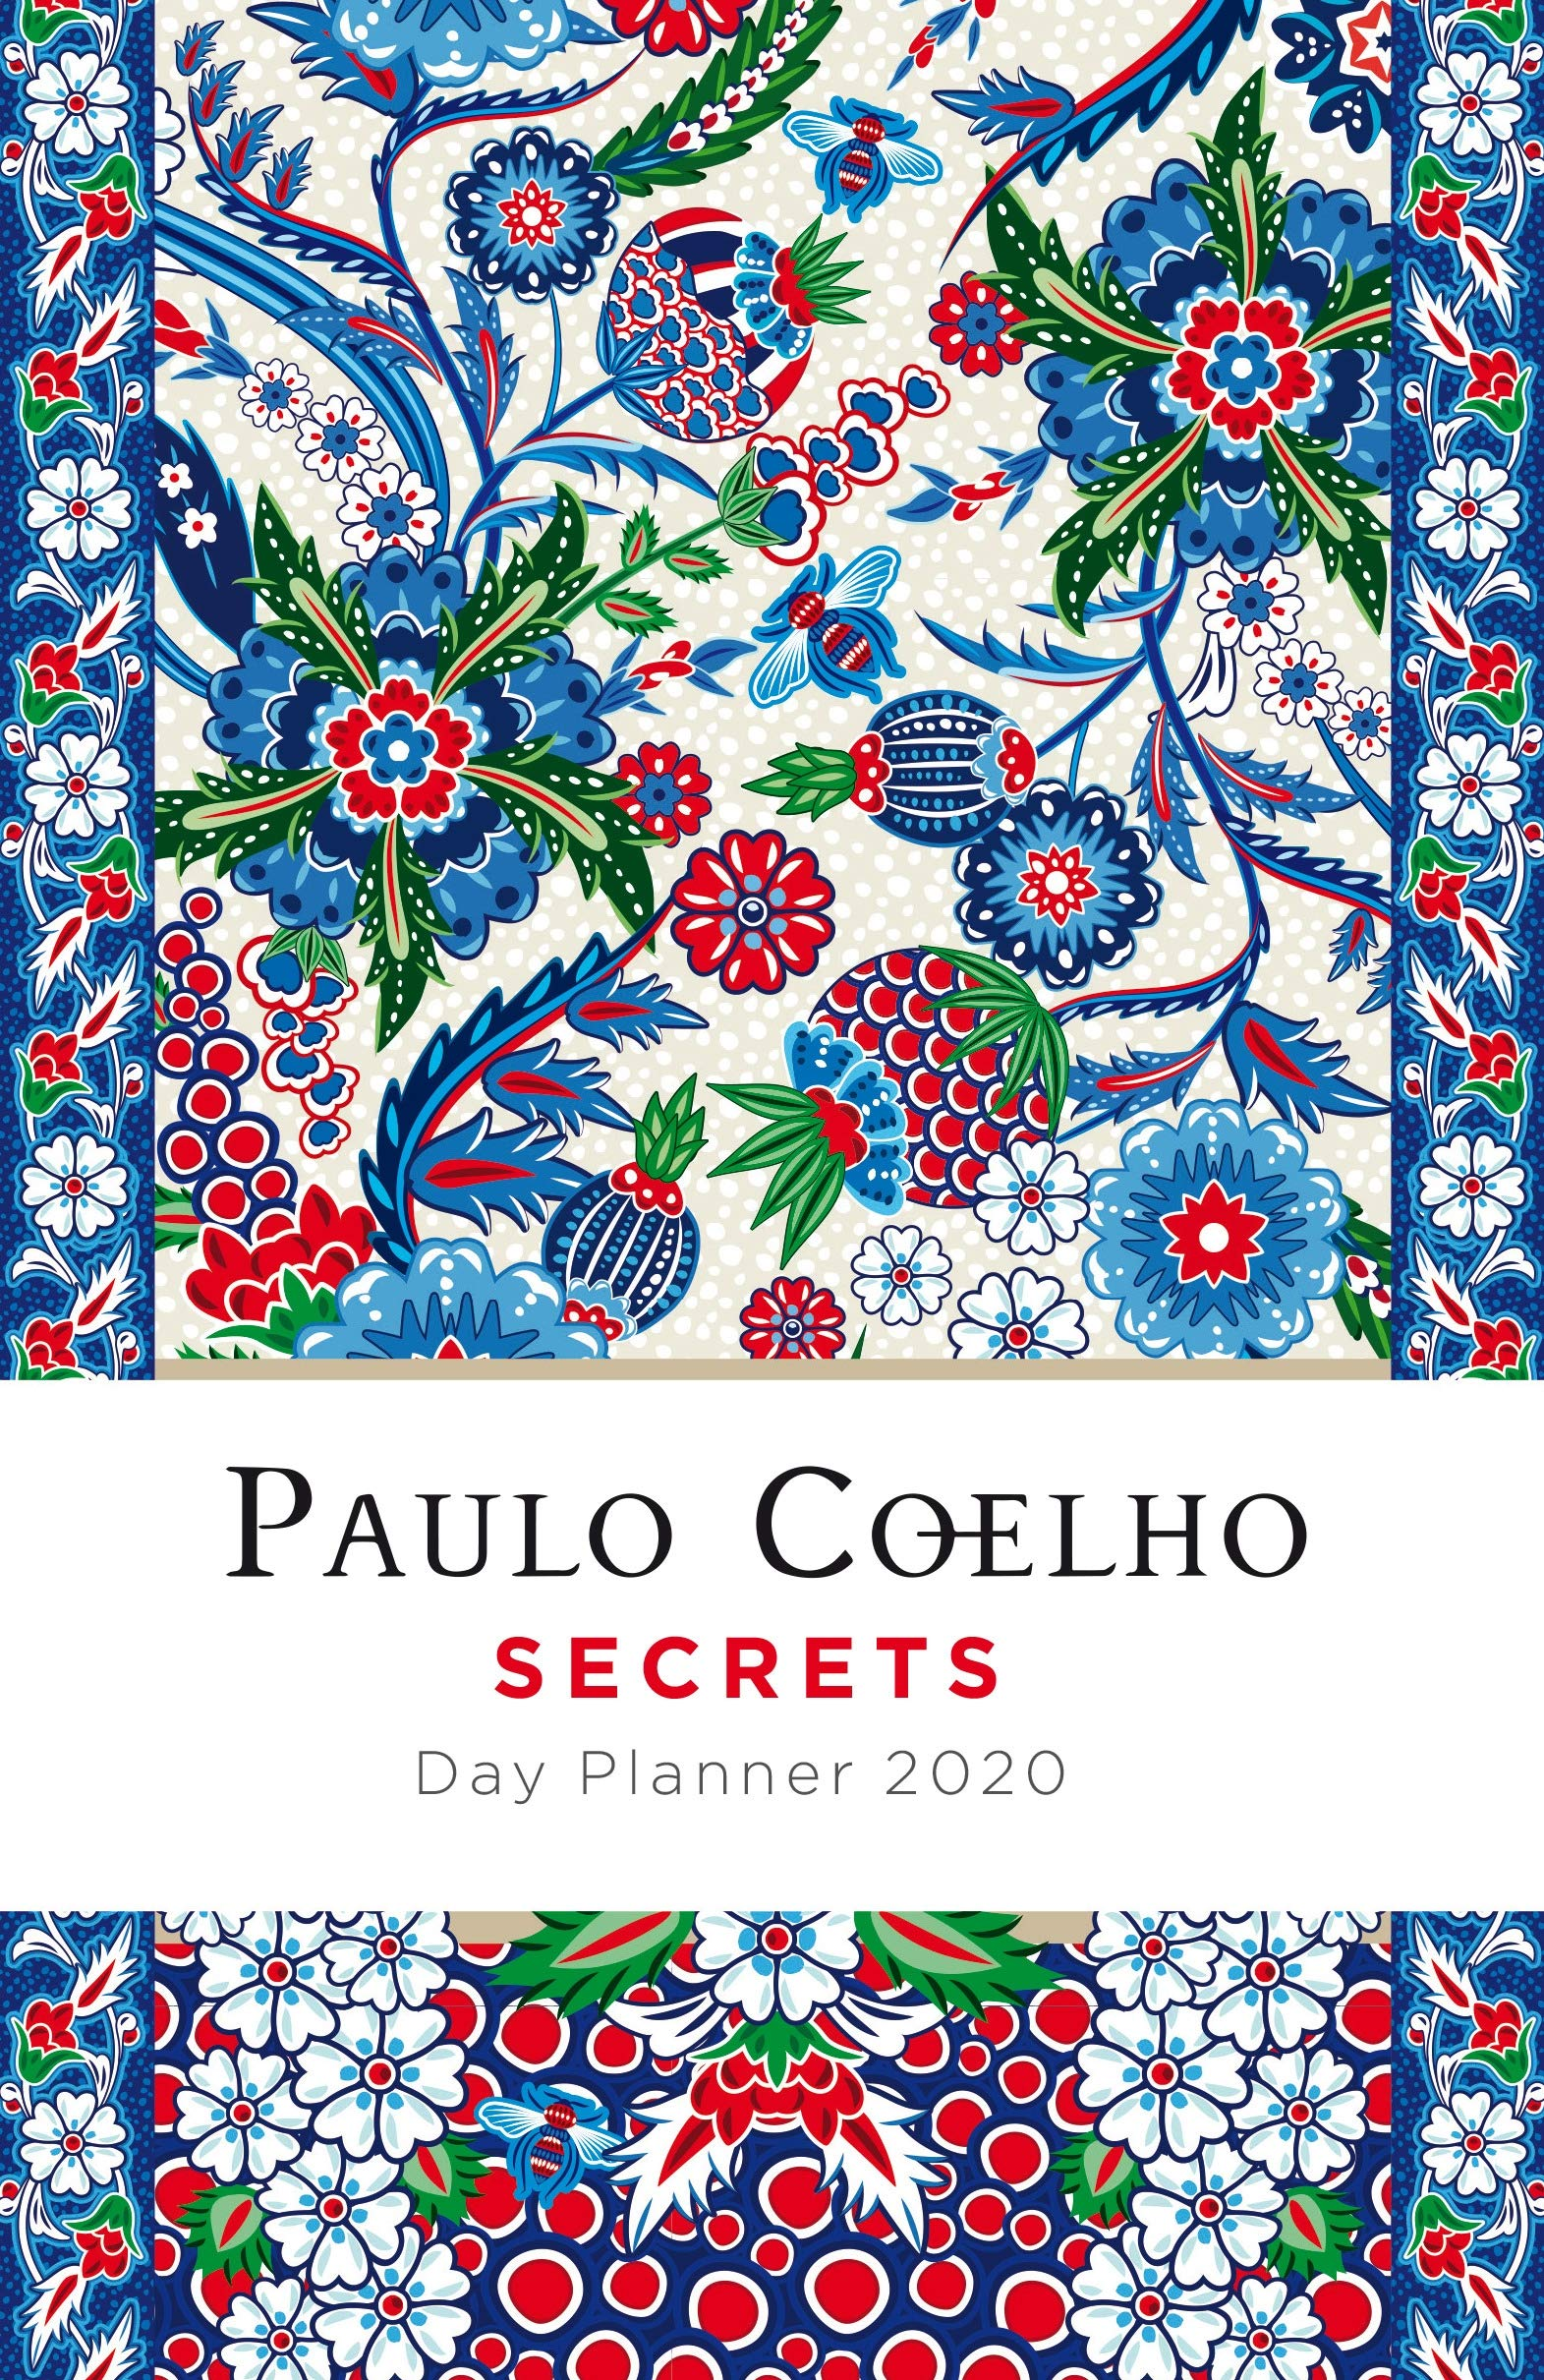 Amazon.com: Secrets: Day Planner 2020 (9781984898128): Paulo ...